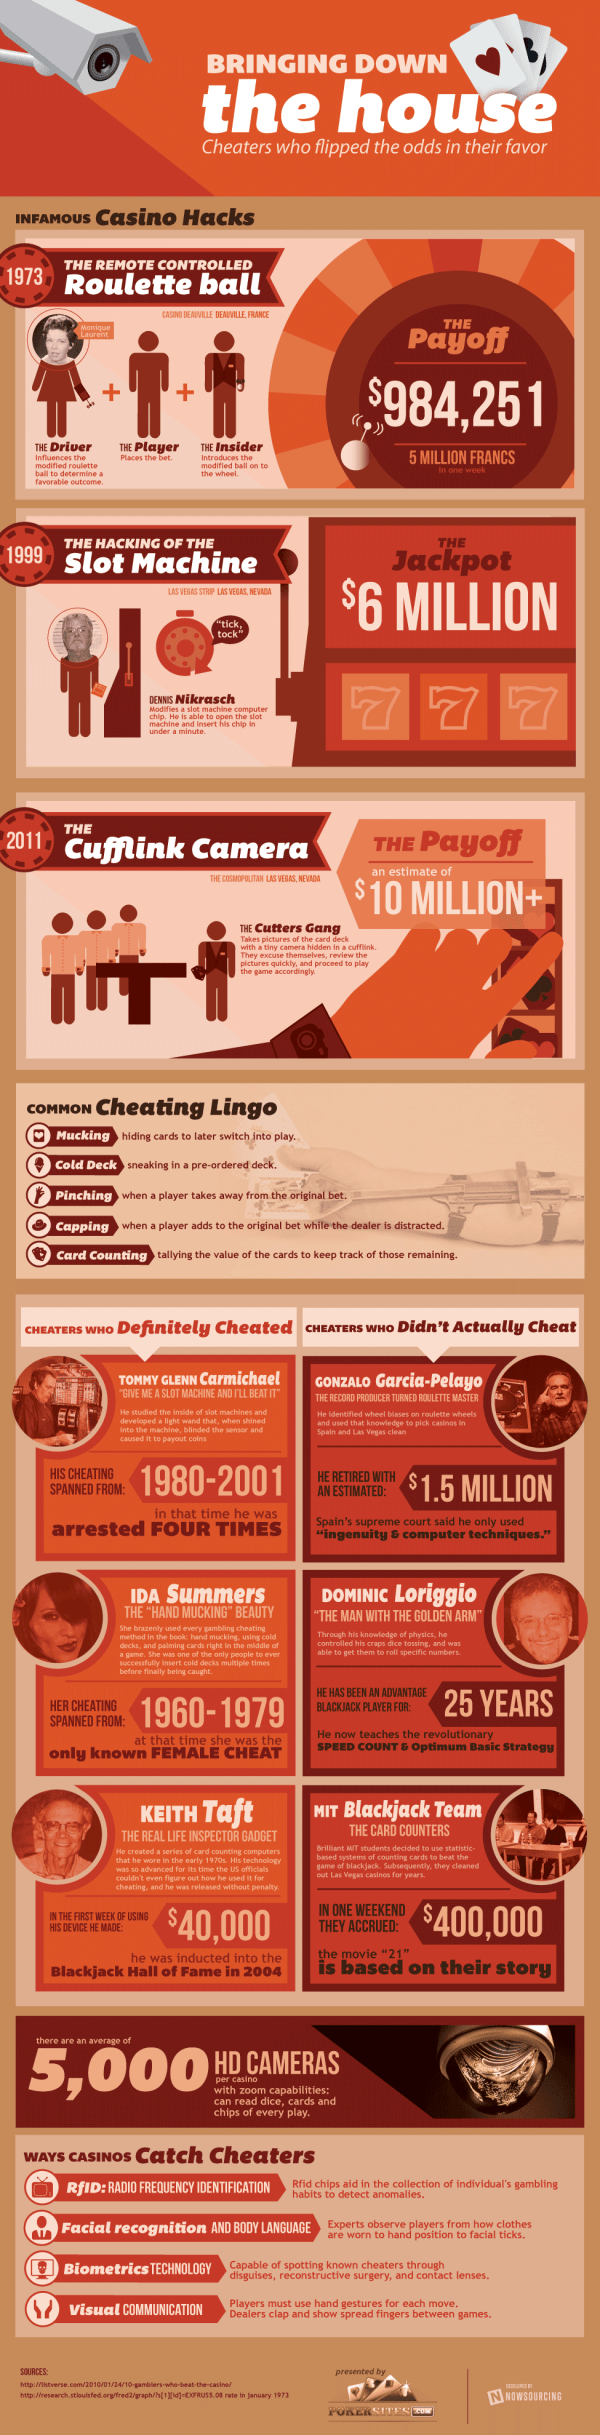 casino cheating Bringing Down the House [Infographic]